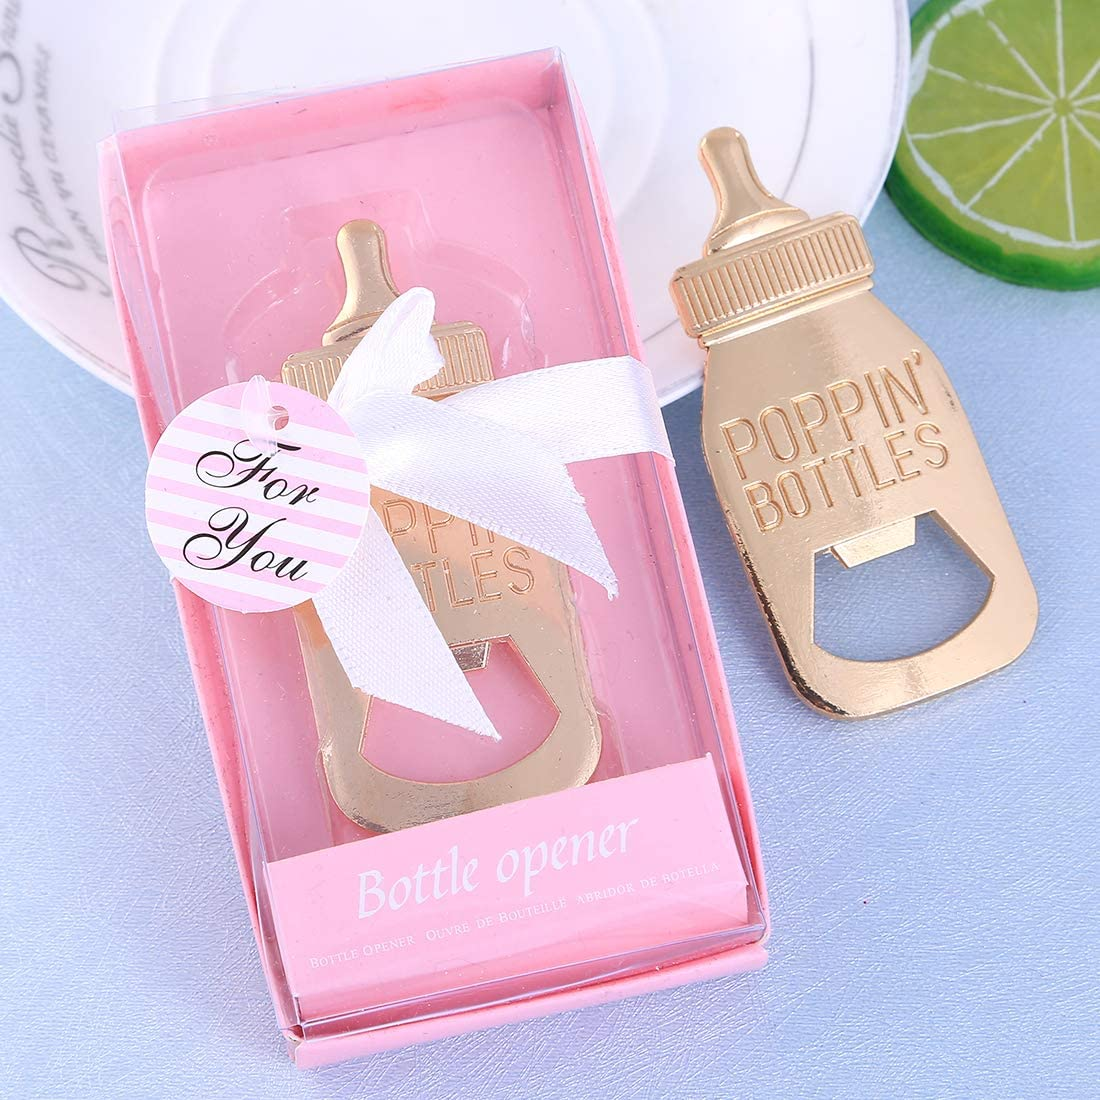 Yuokwer 24 pcs Bottle Opener Baby Shower Favor for Guest,Rose Gold Feeding Bottle Opener Wedding Favors Baby Shower Giveaways Gift to Guest, Party Favors Gift & Party Decorations Supplies (Pink, 24)